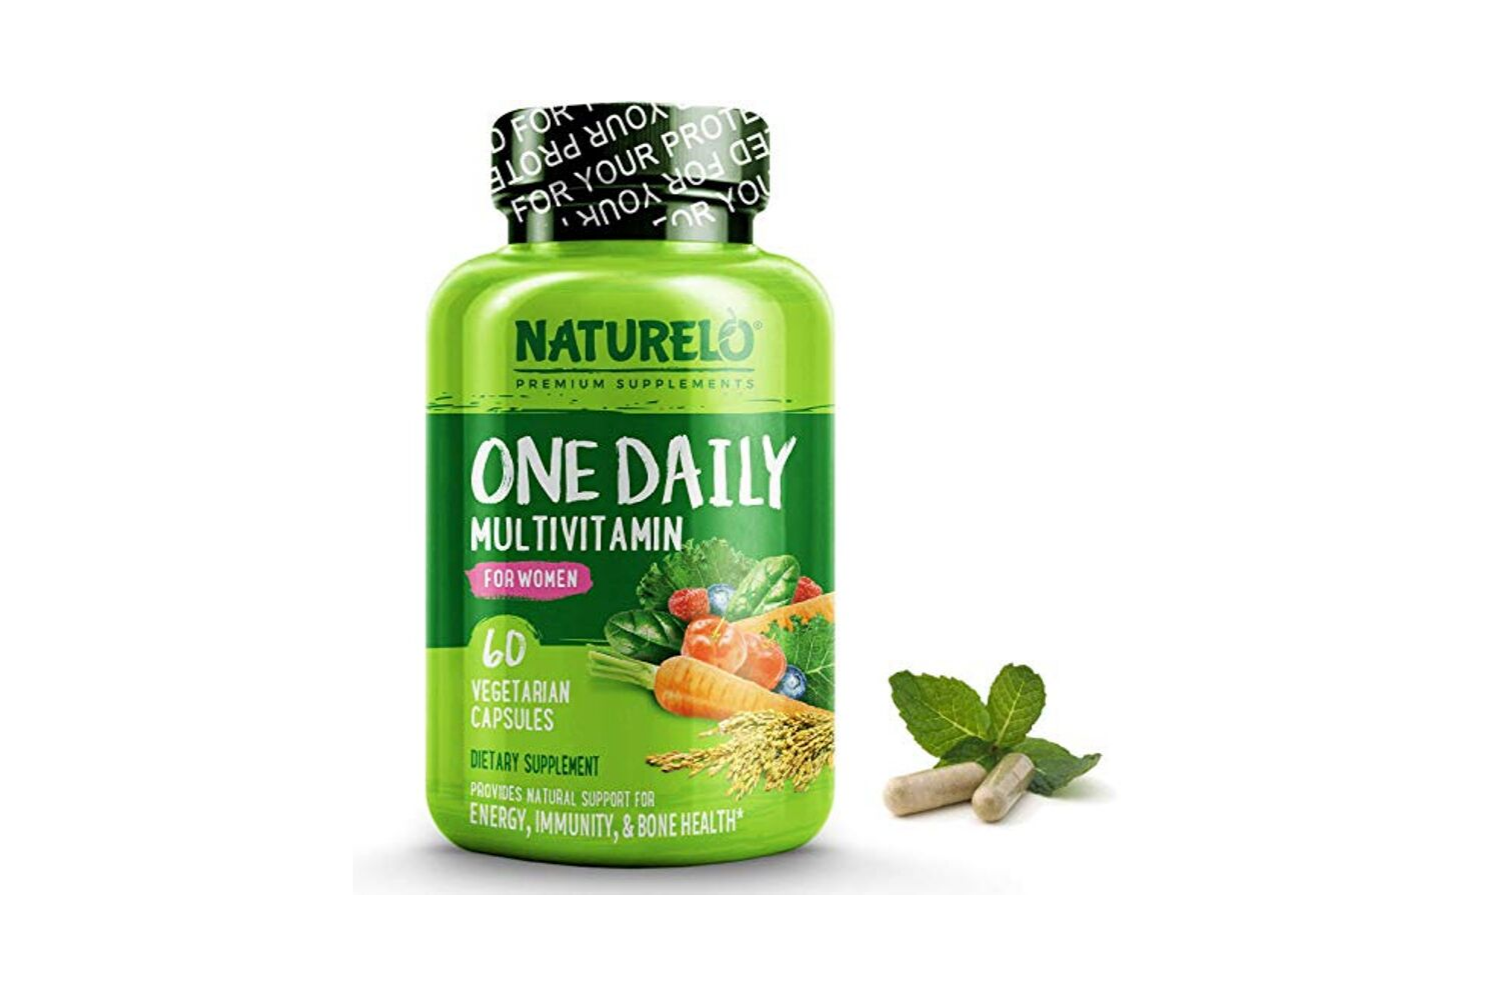 Naturelo One Daily Multivitamin